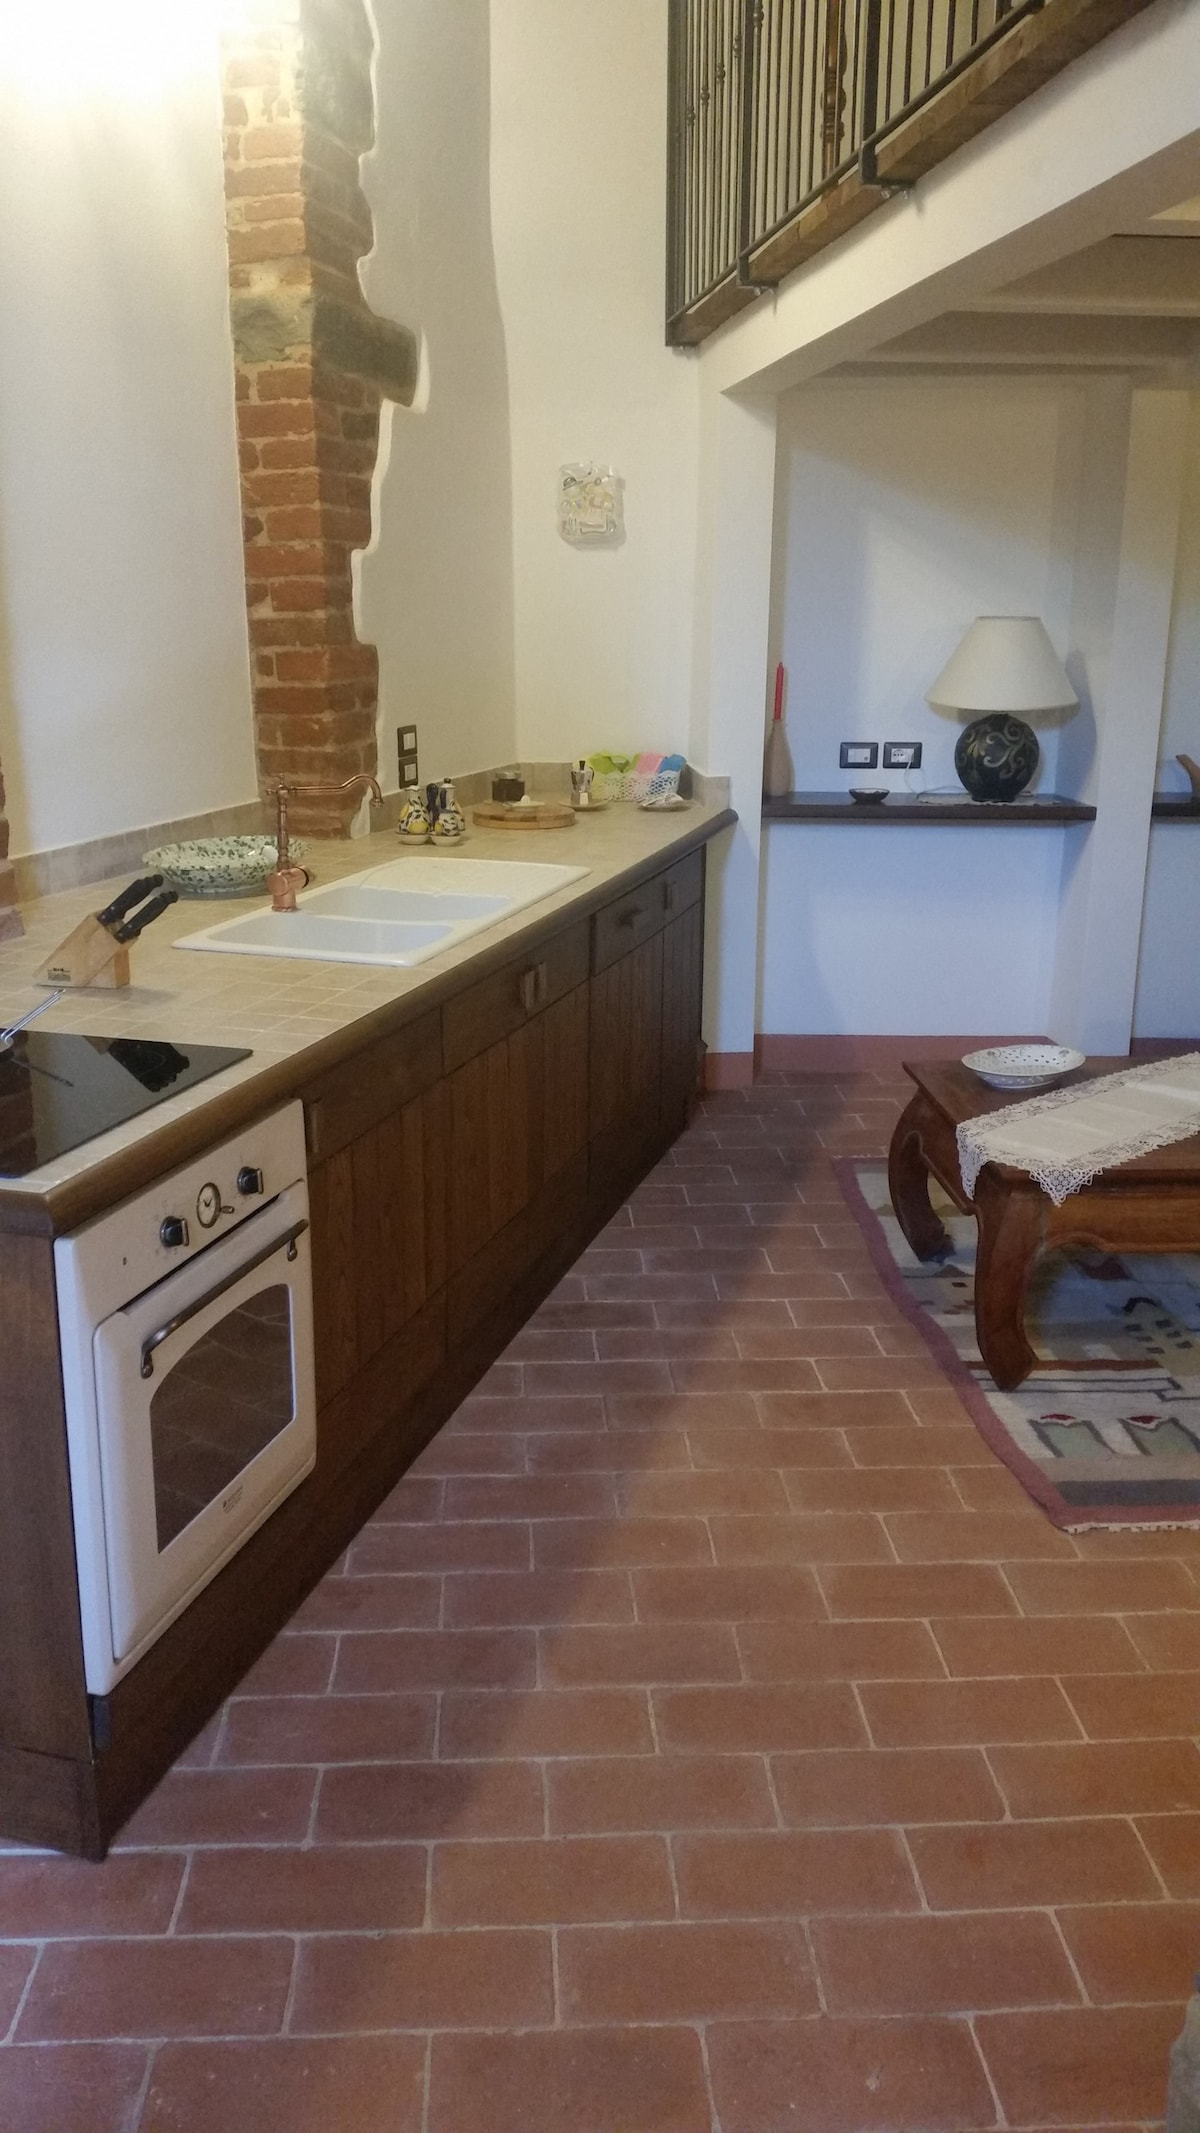 4 bedroom apartment in Panicale